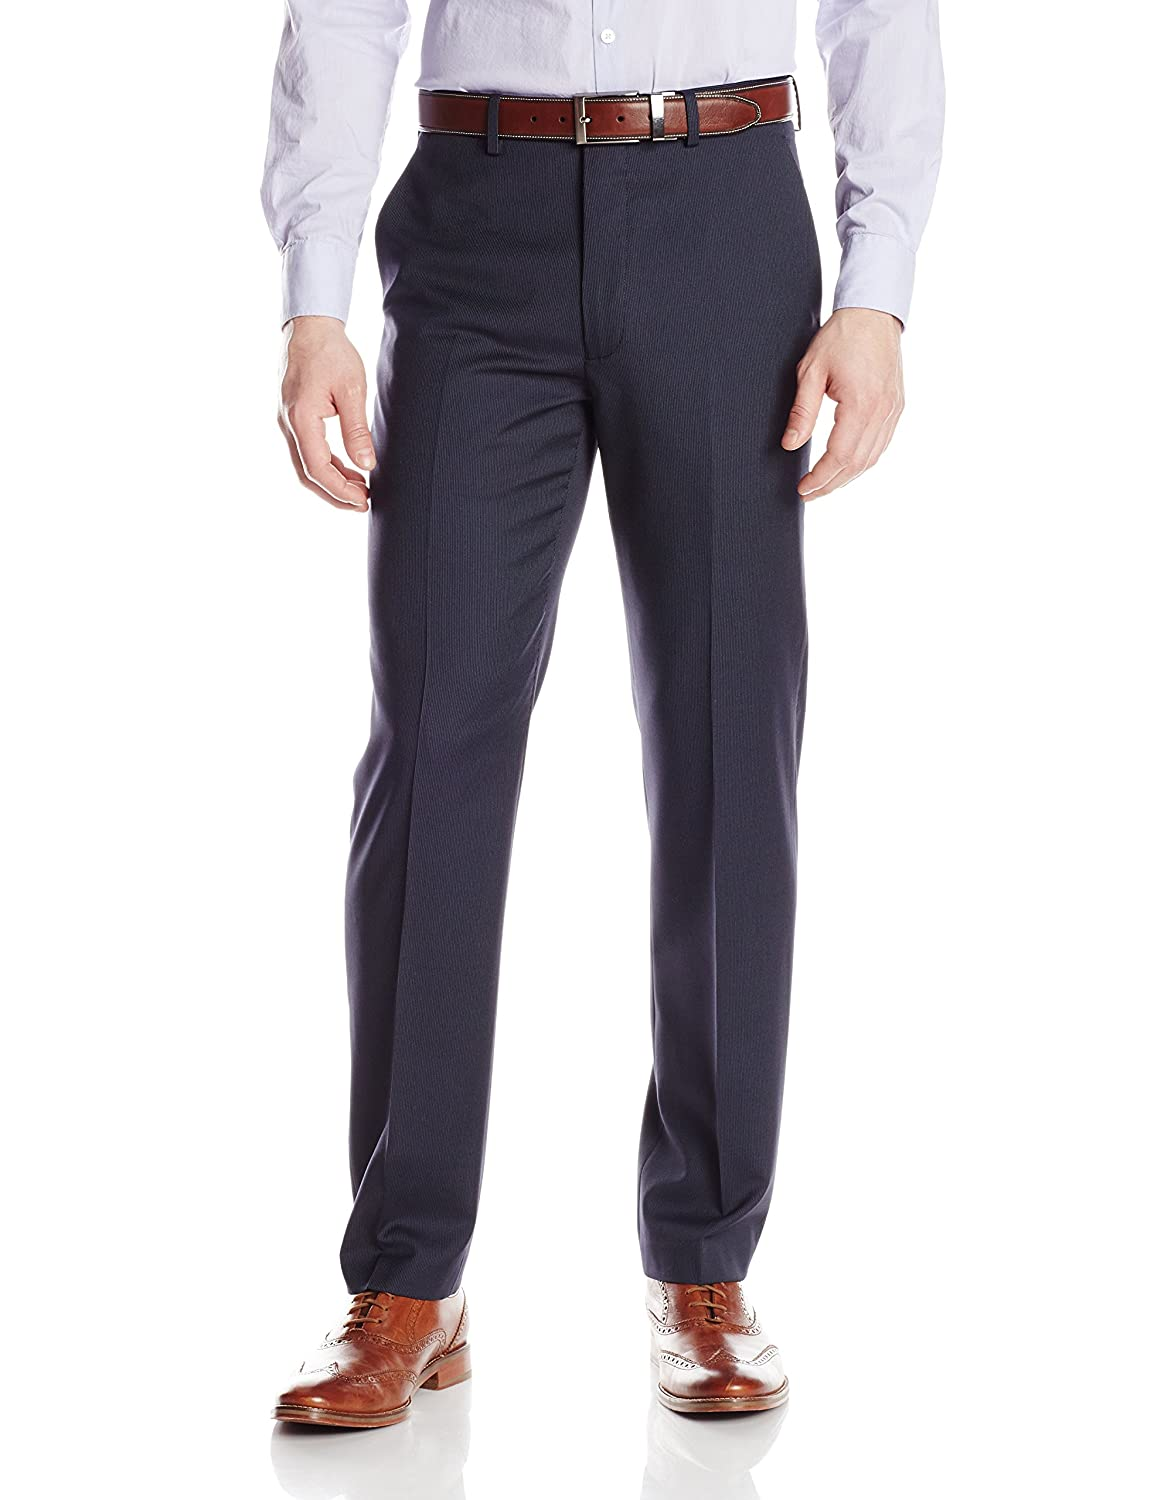 DKNY Men's Suit Separate (Blazer Pant) DKNY Men's Tailored DEPPPD1Y0061